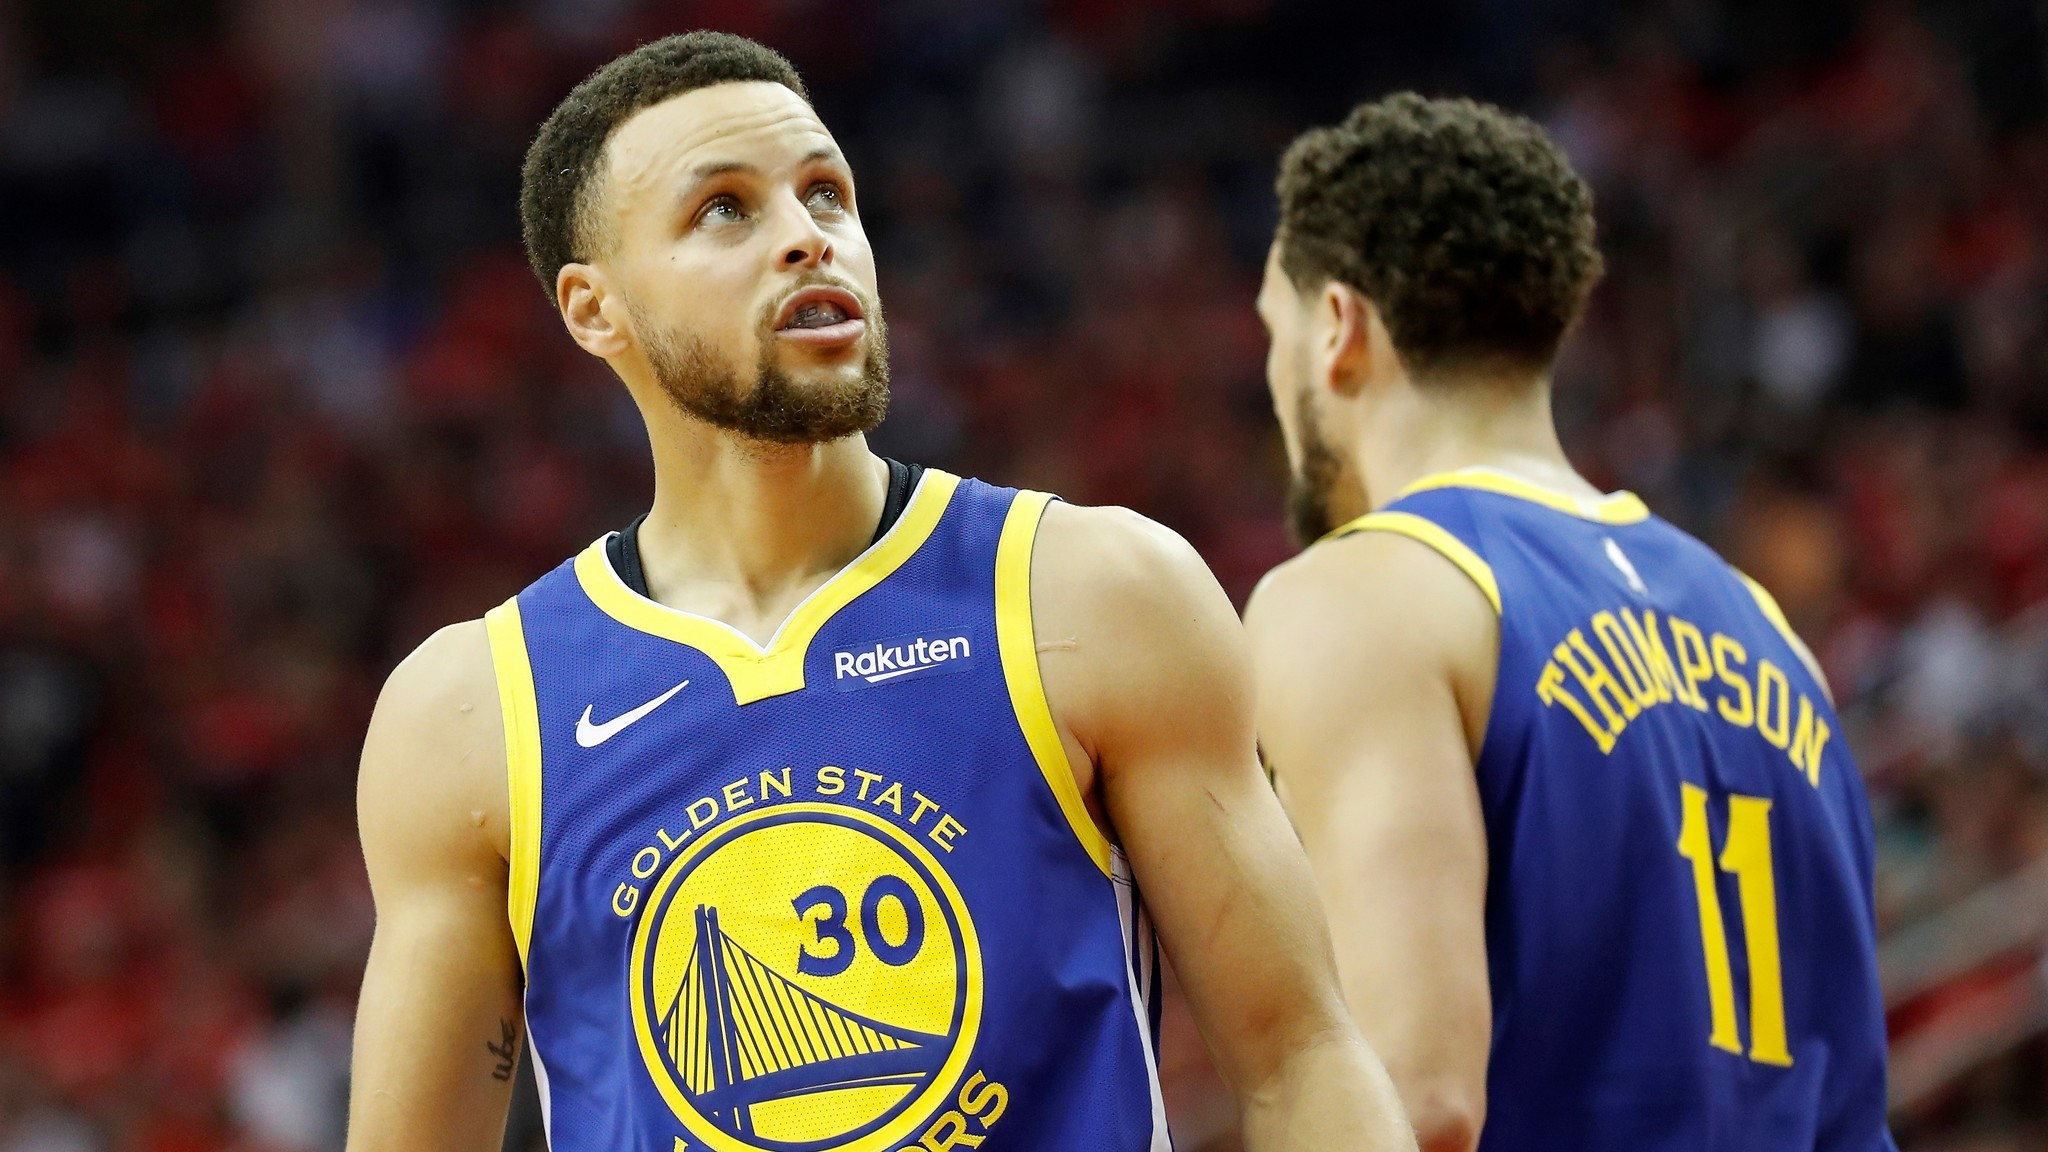 Steve Kerr says Steph Curry will come back when healthy; Klay Thompson should too if he can